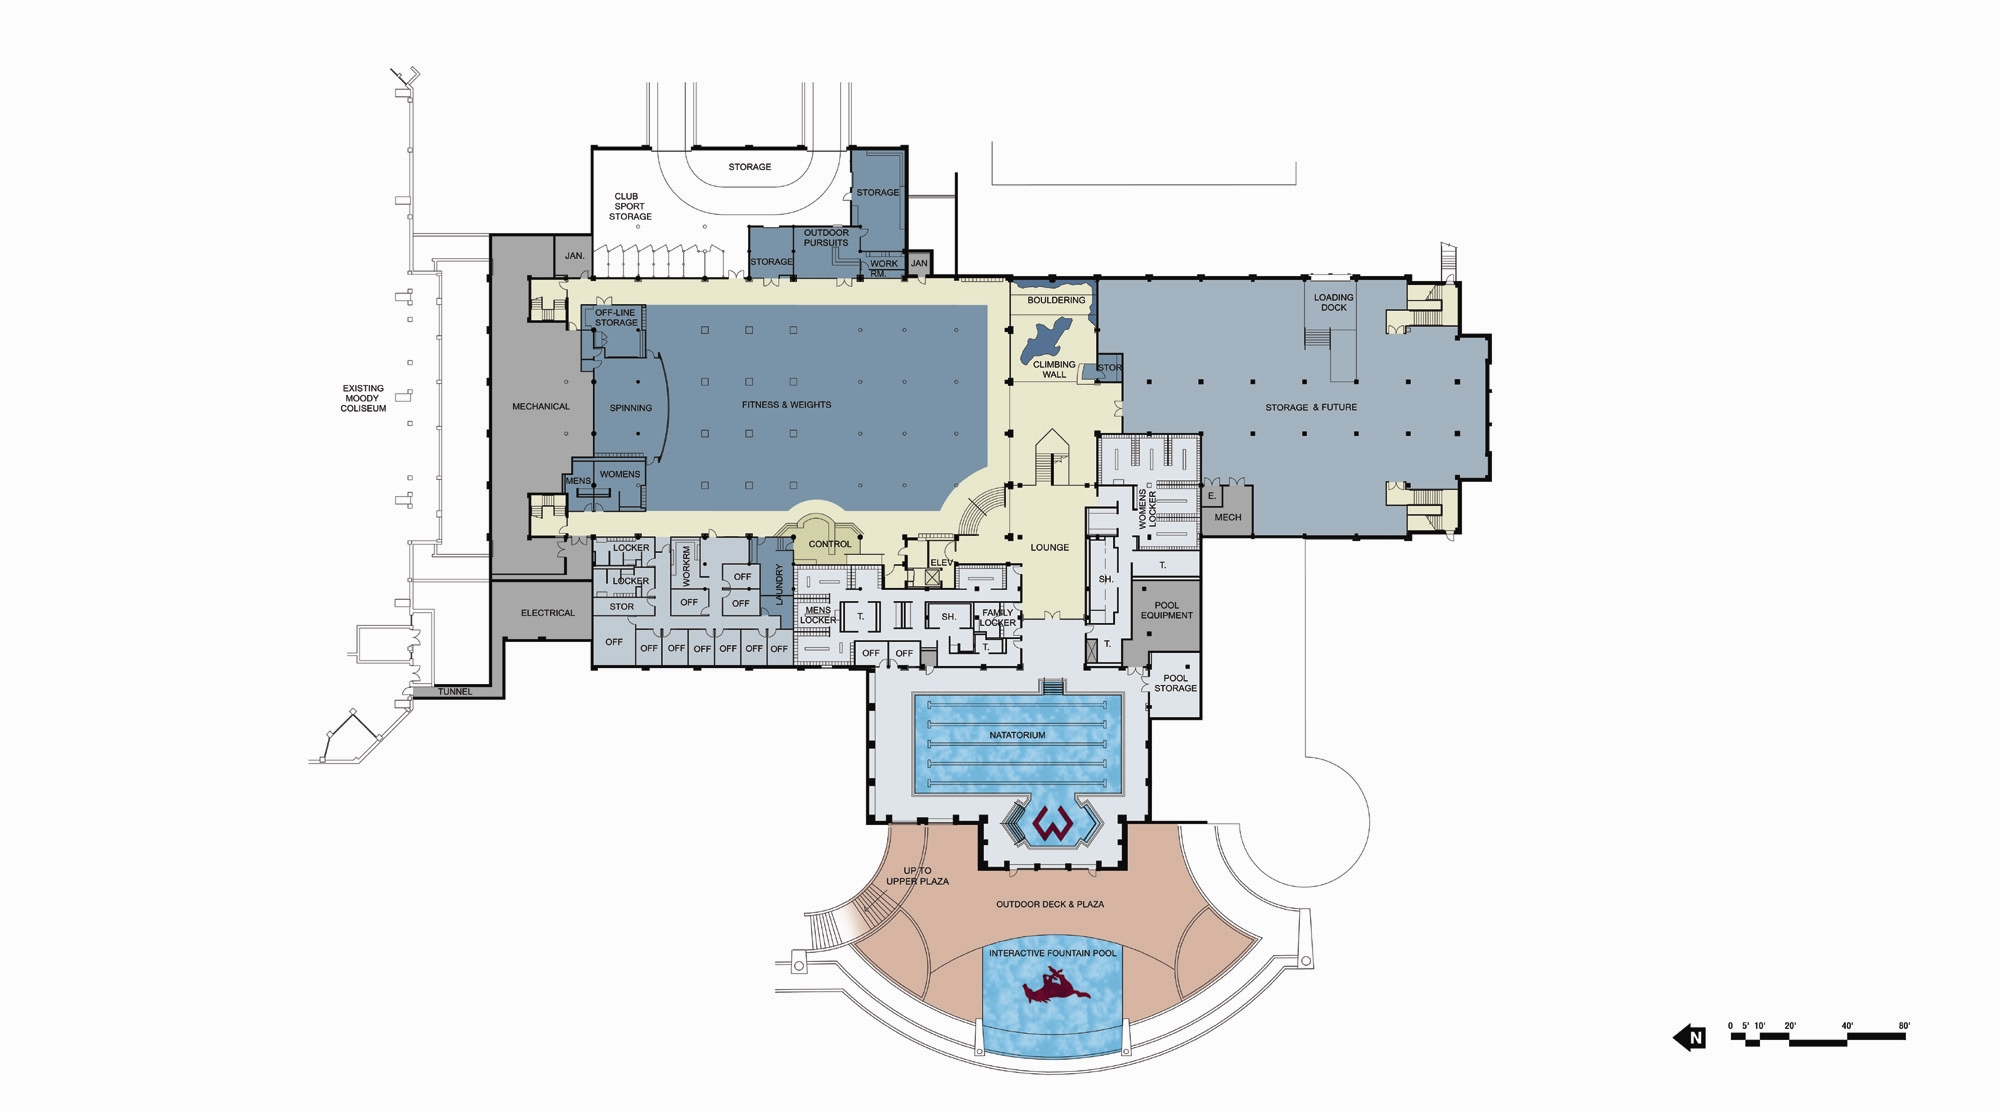 Lifetime fitness floor plan my review lifetime fitness for My contractor plan